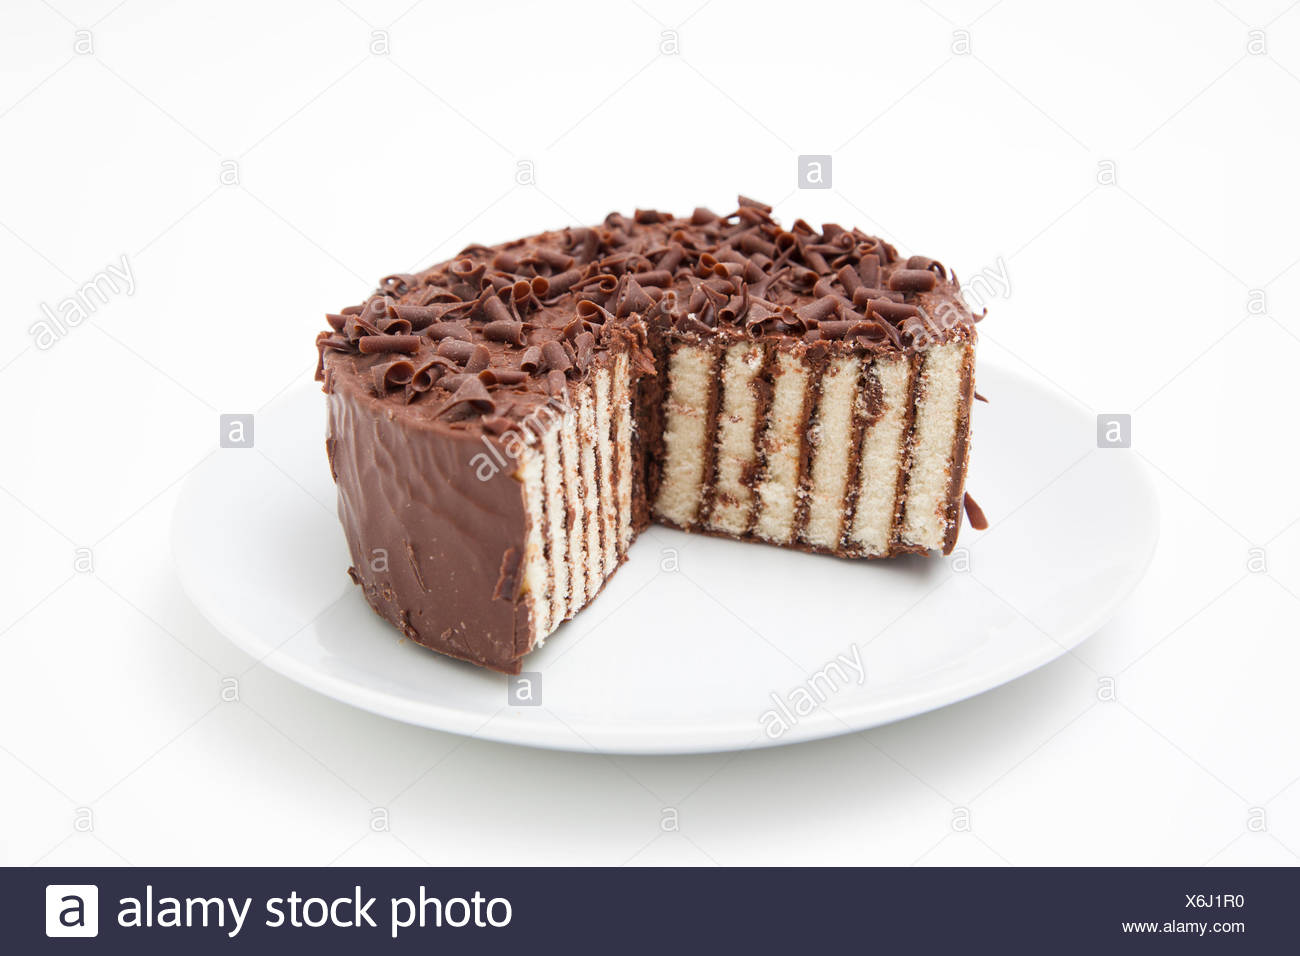 Chocolate layer cake on a plate  sc 1 st  Alamy & Chocolate layer cake on a plate Stock Photo: 279450388 - Alamy